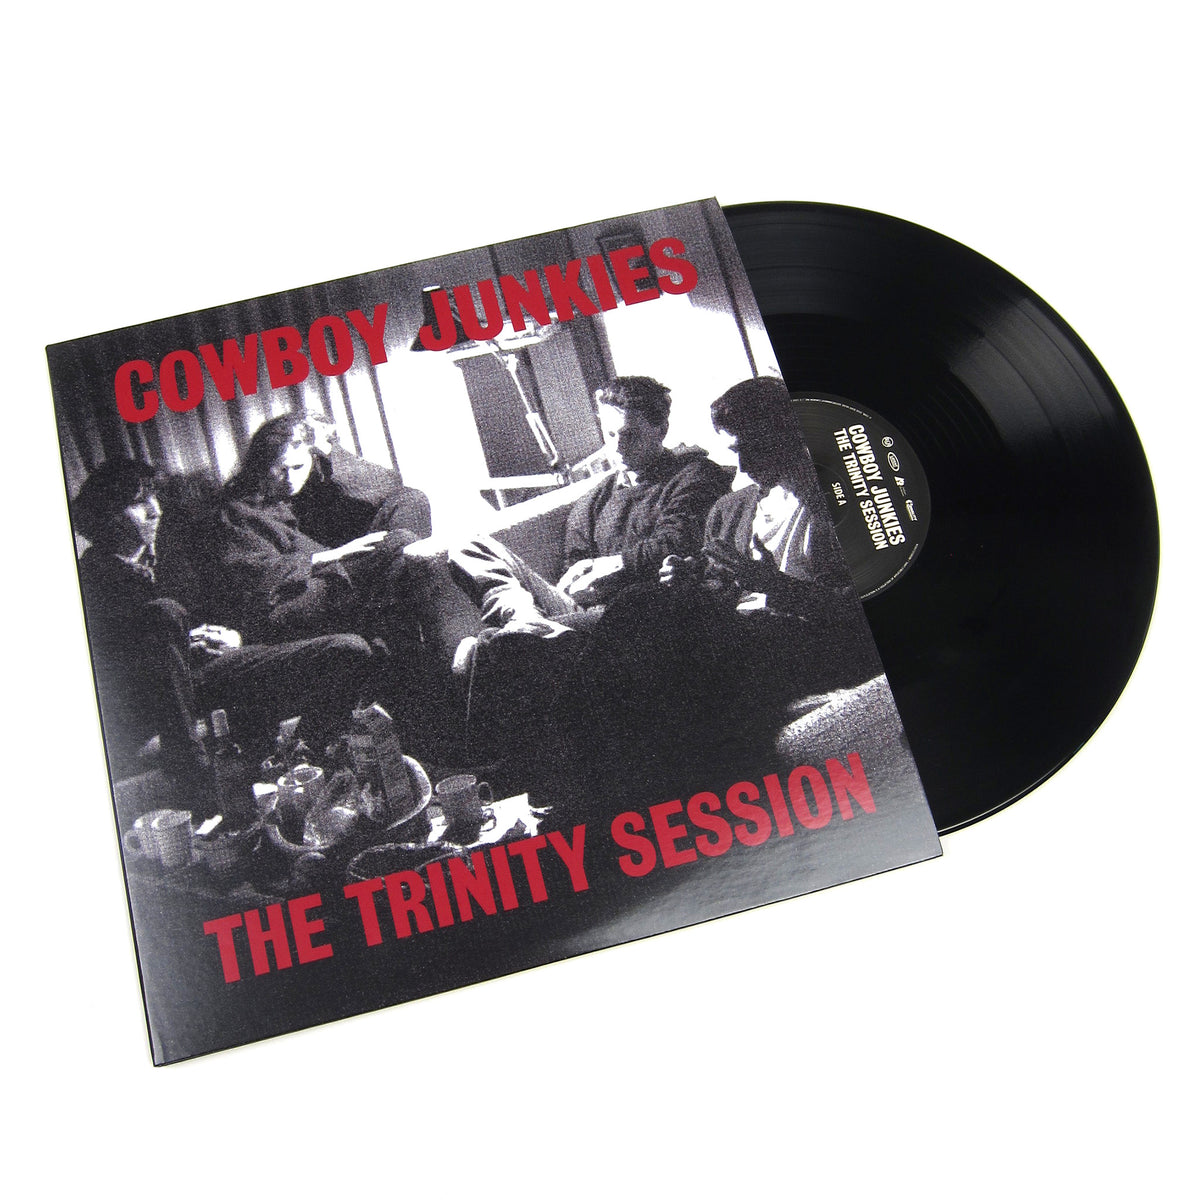 Cowboy Junkies: The Trinity Session Vinyl 2LP